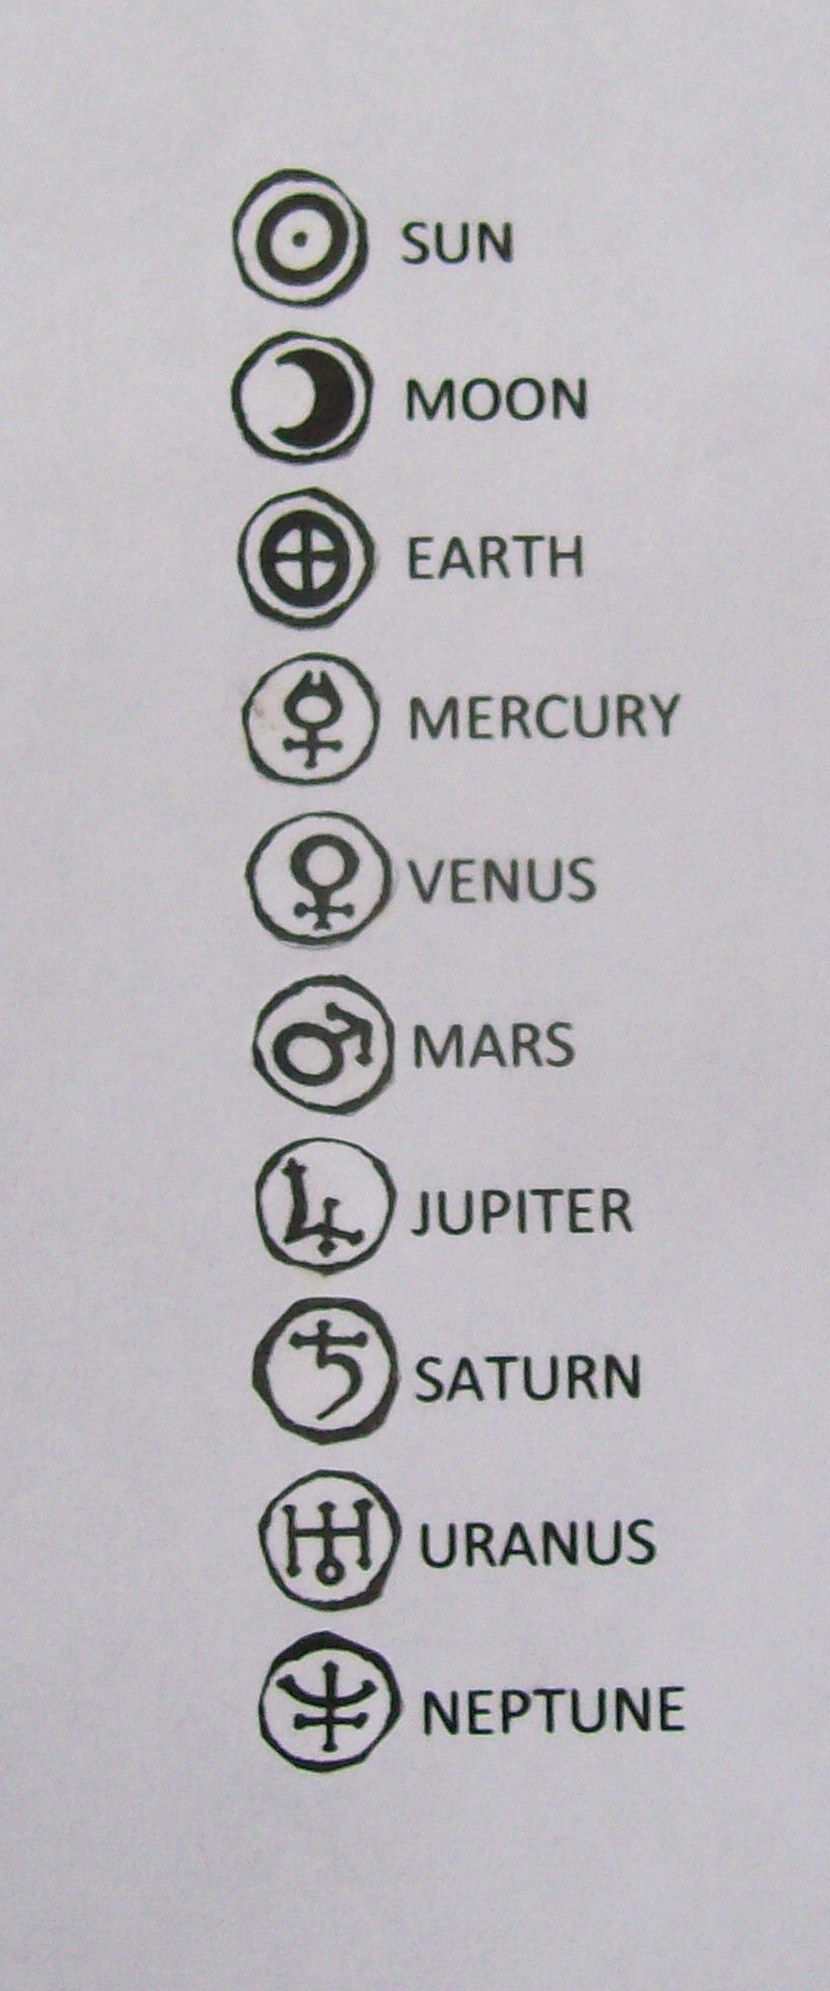 Im getting neptune space and little mermaid related right inner right arm tattoo idea original post its okay plutos astronomical symbol doesnt look very good anyway also uranuss symbol in this picture is buycottarizona